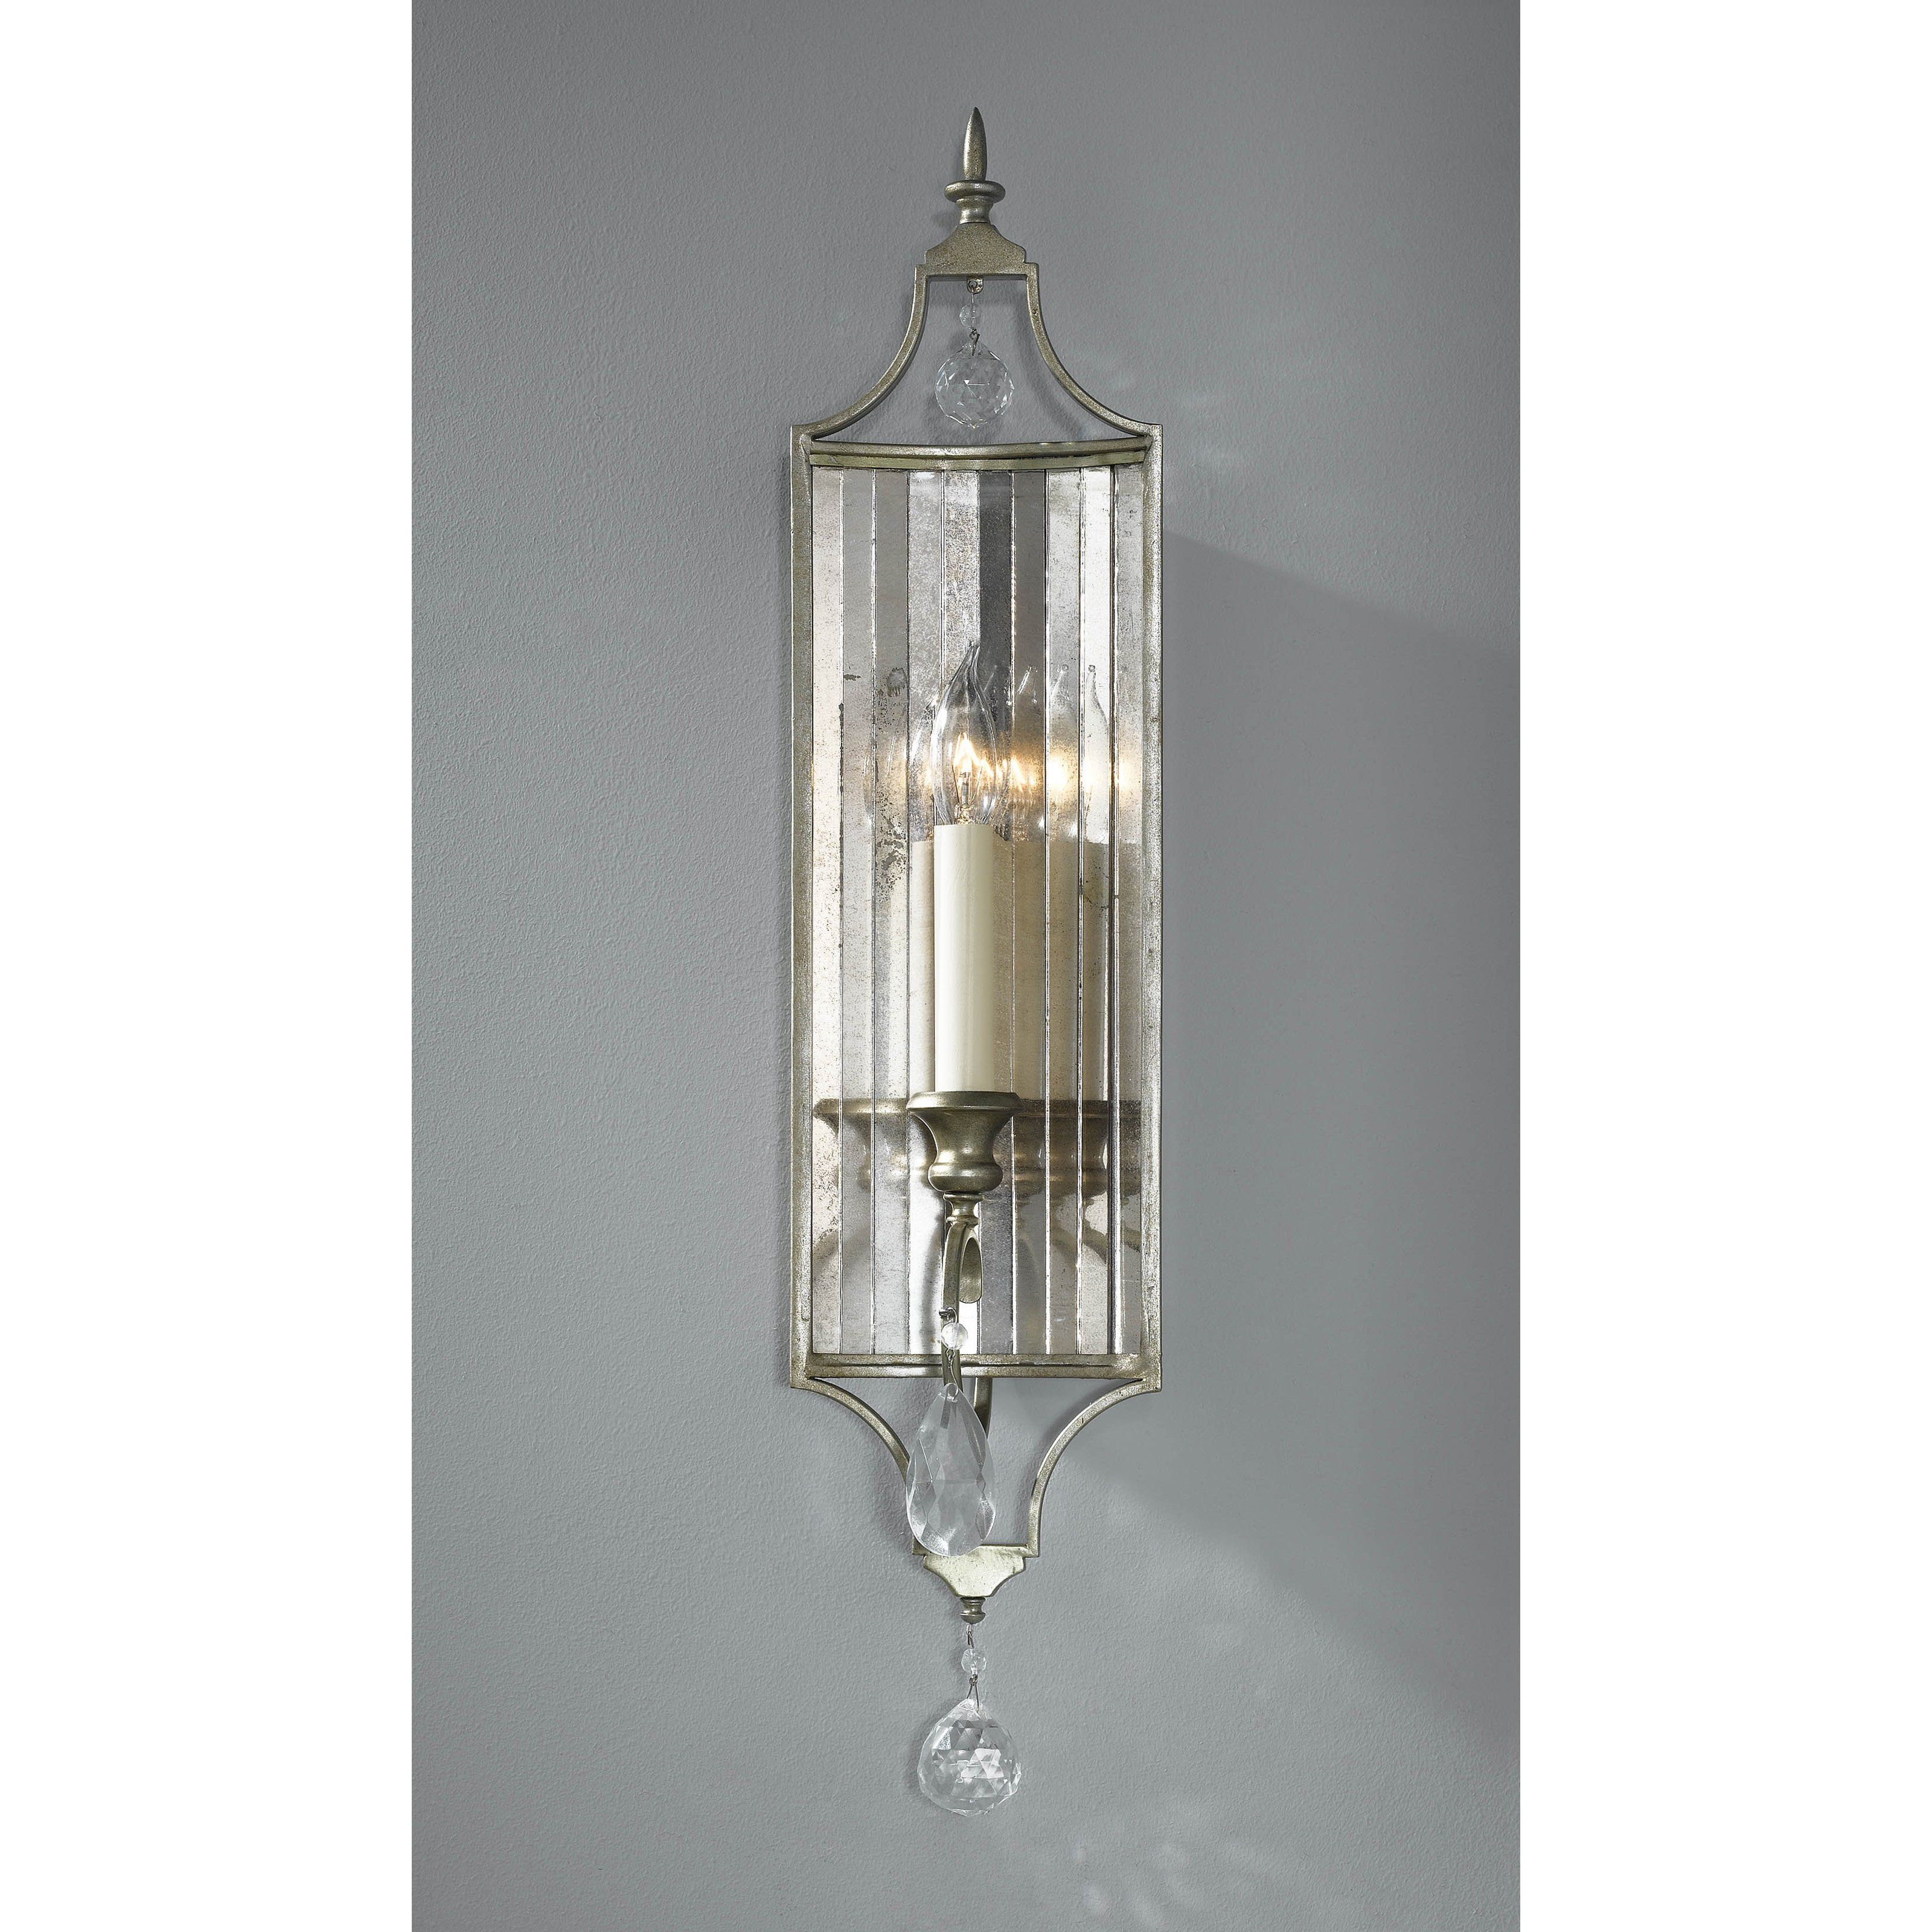 Feiss gianna wbgs wall fixture gilded silver from hayneedle